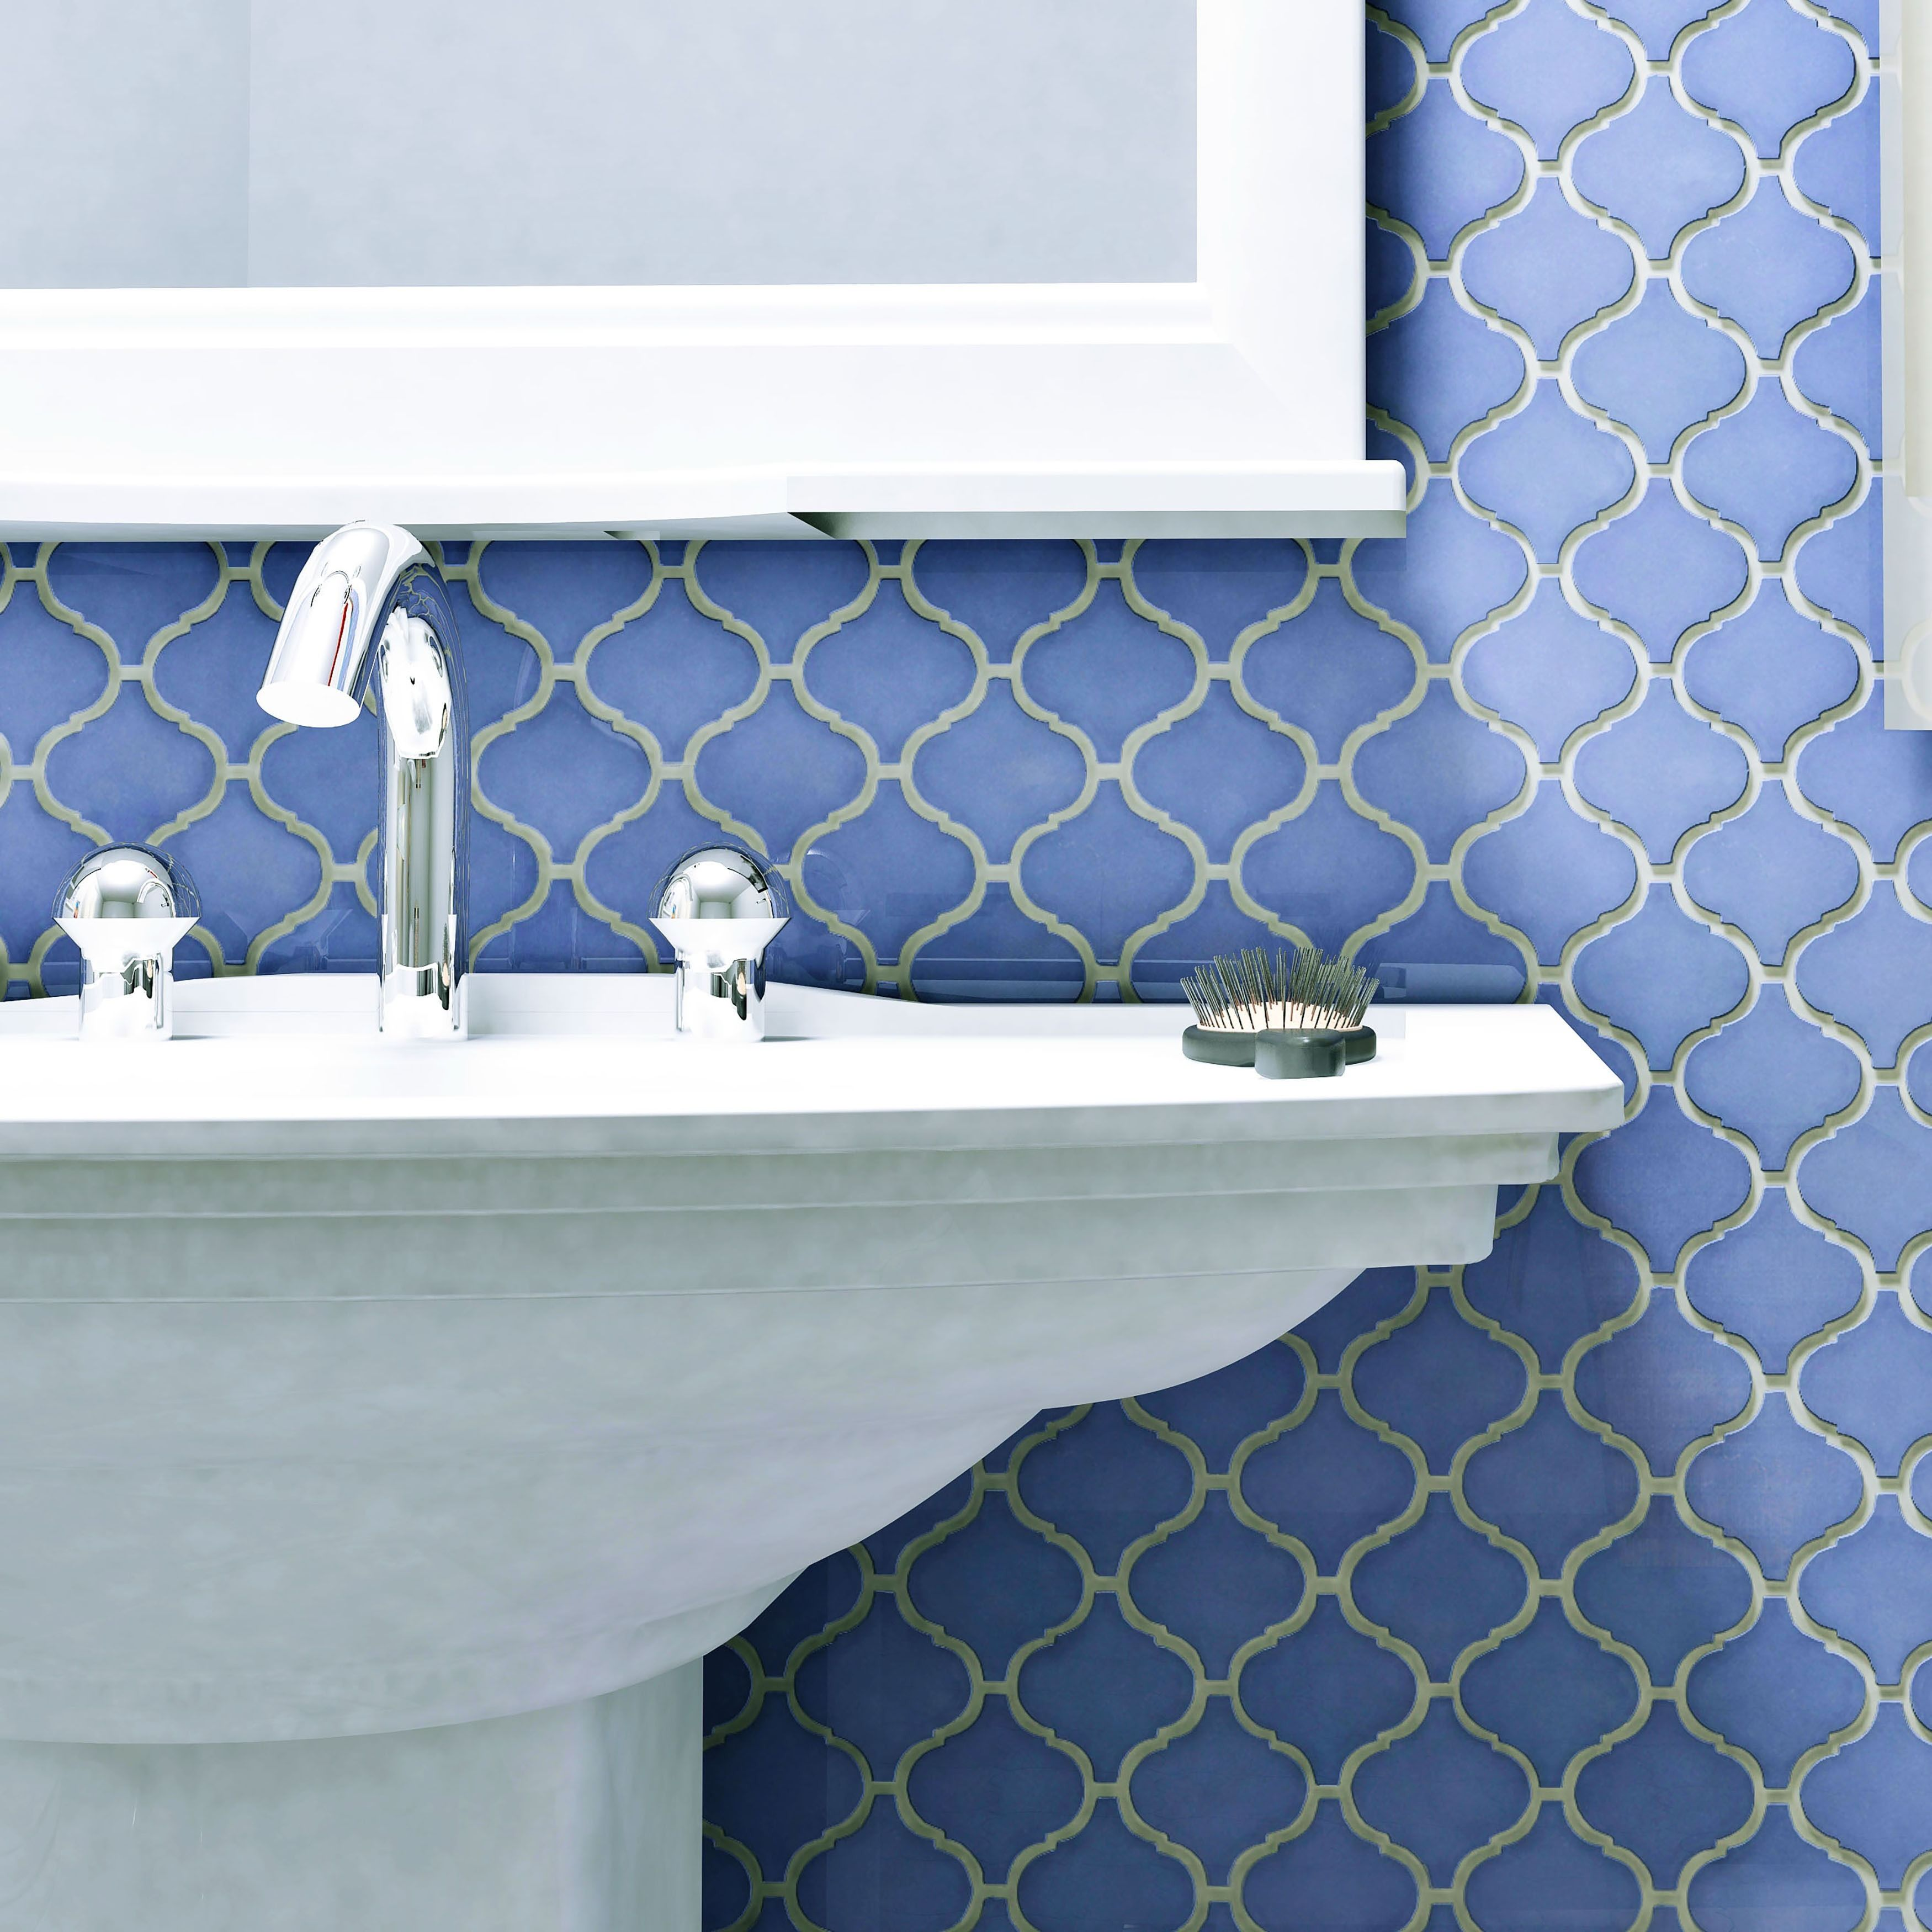 SomerTile 9.75x10.75-inch Victorian Morocco Glossy Porcelain Mosaic ...